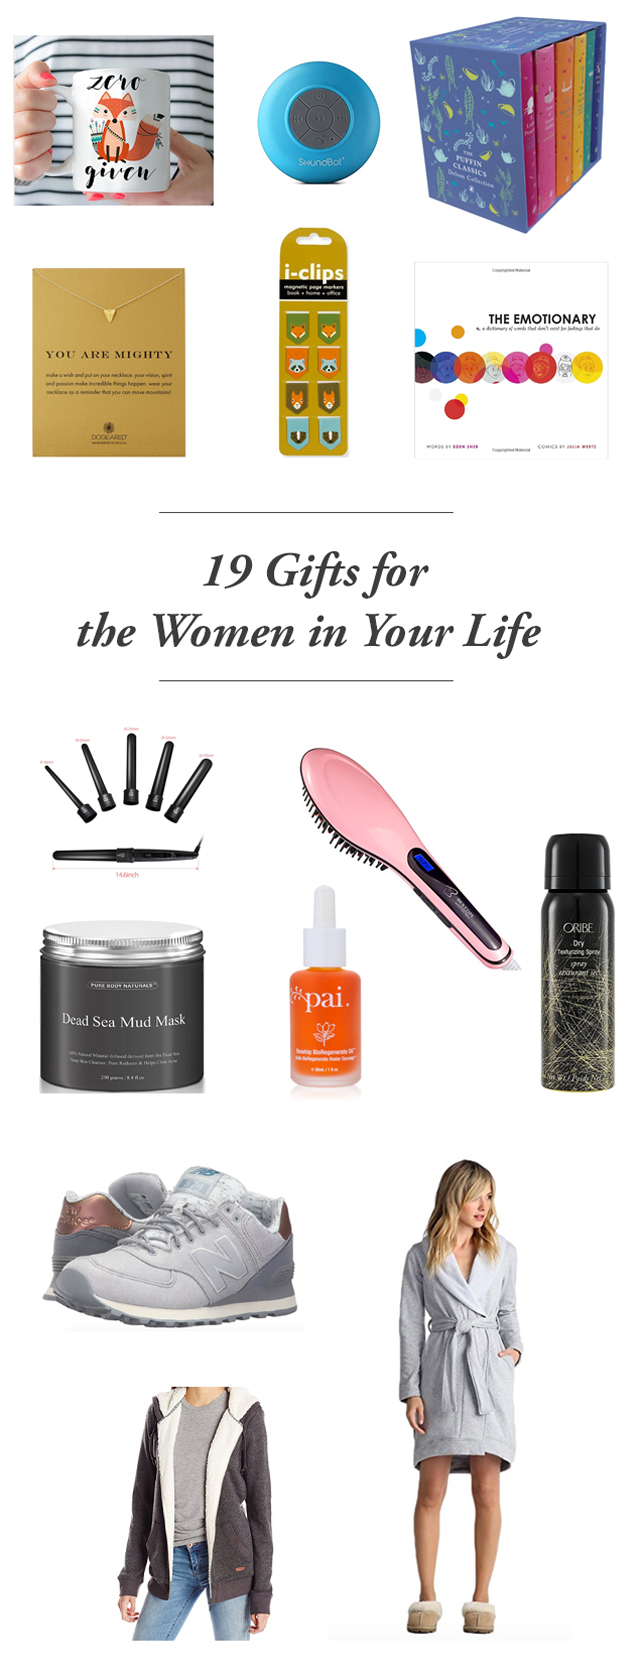 19 Gifts for the women in your life - the best gifts for your mom, best gifts for your friends, and best gifts for your sister. Such a good list!